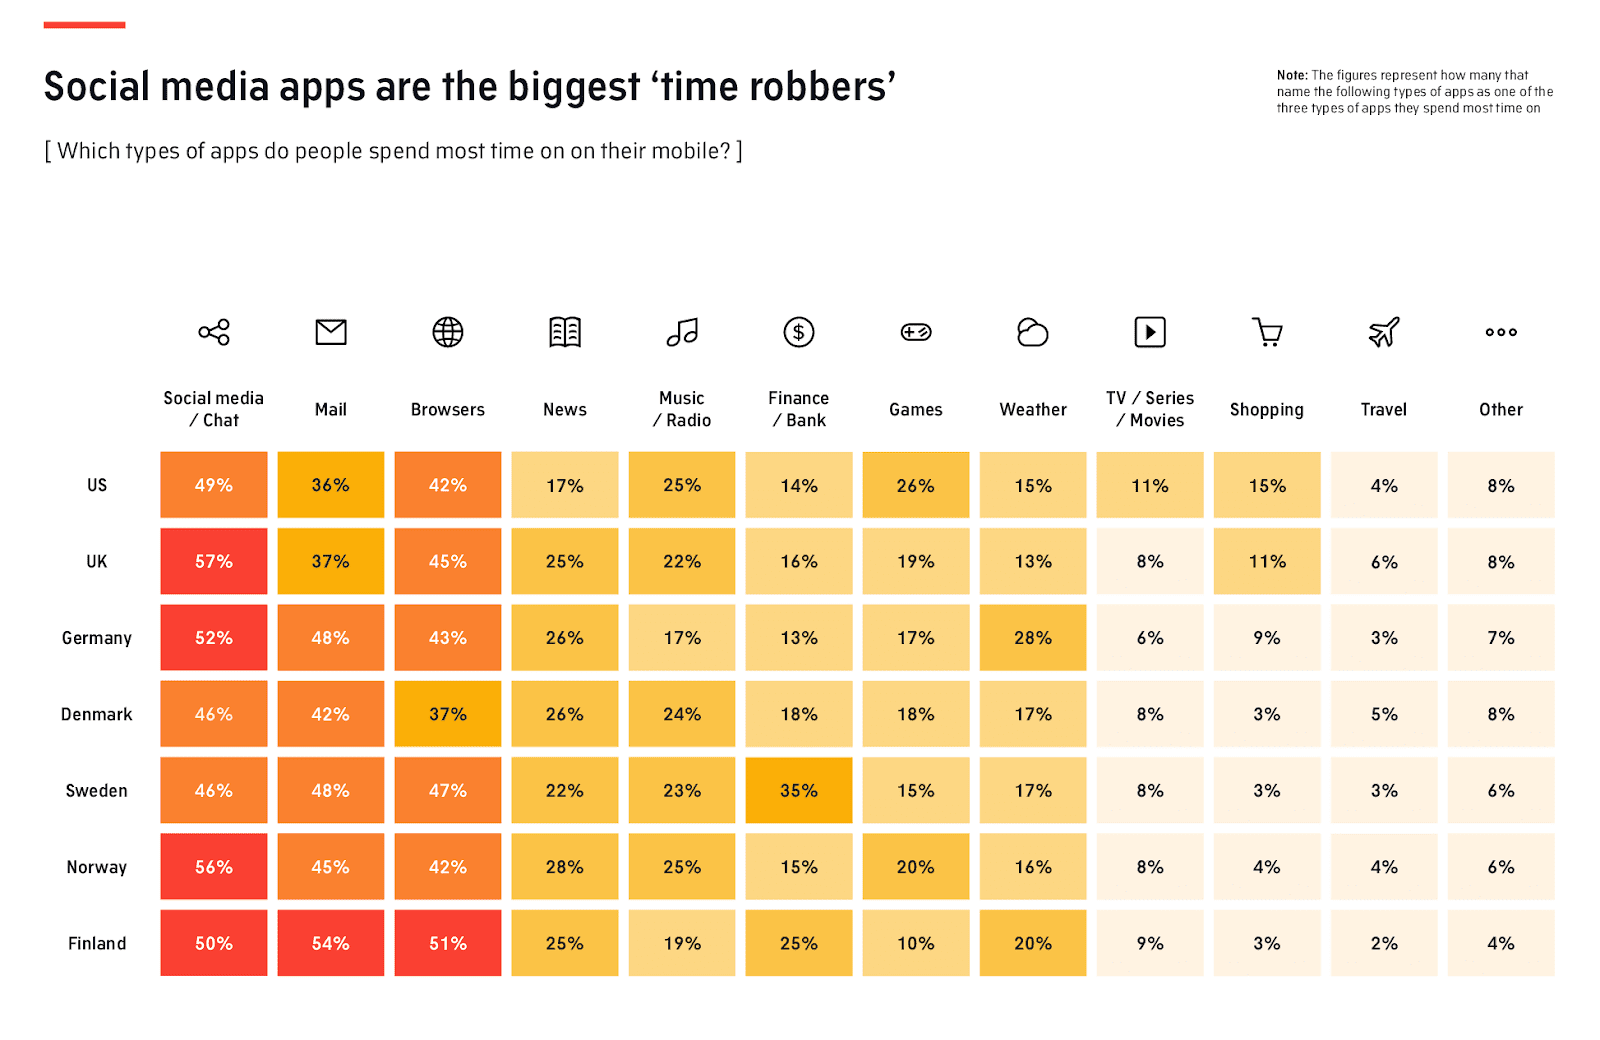 Which types of apps do people spend most time on on their mobile?